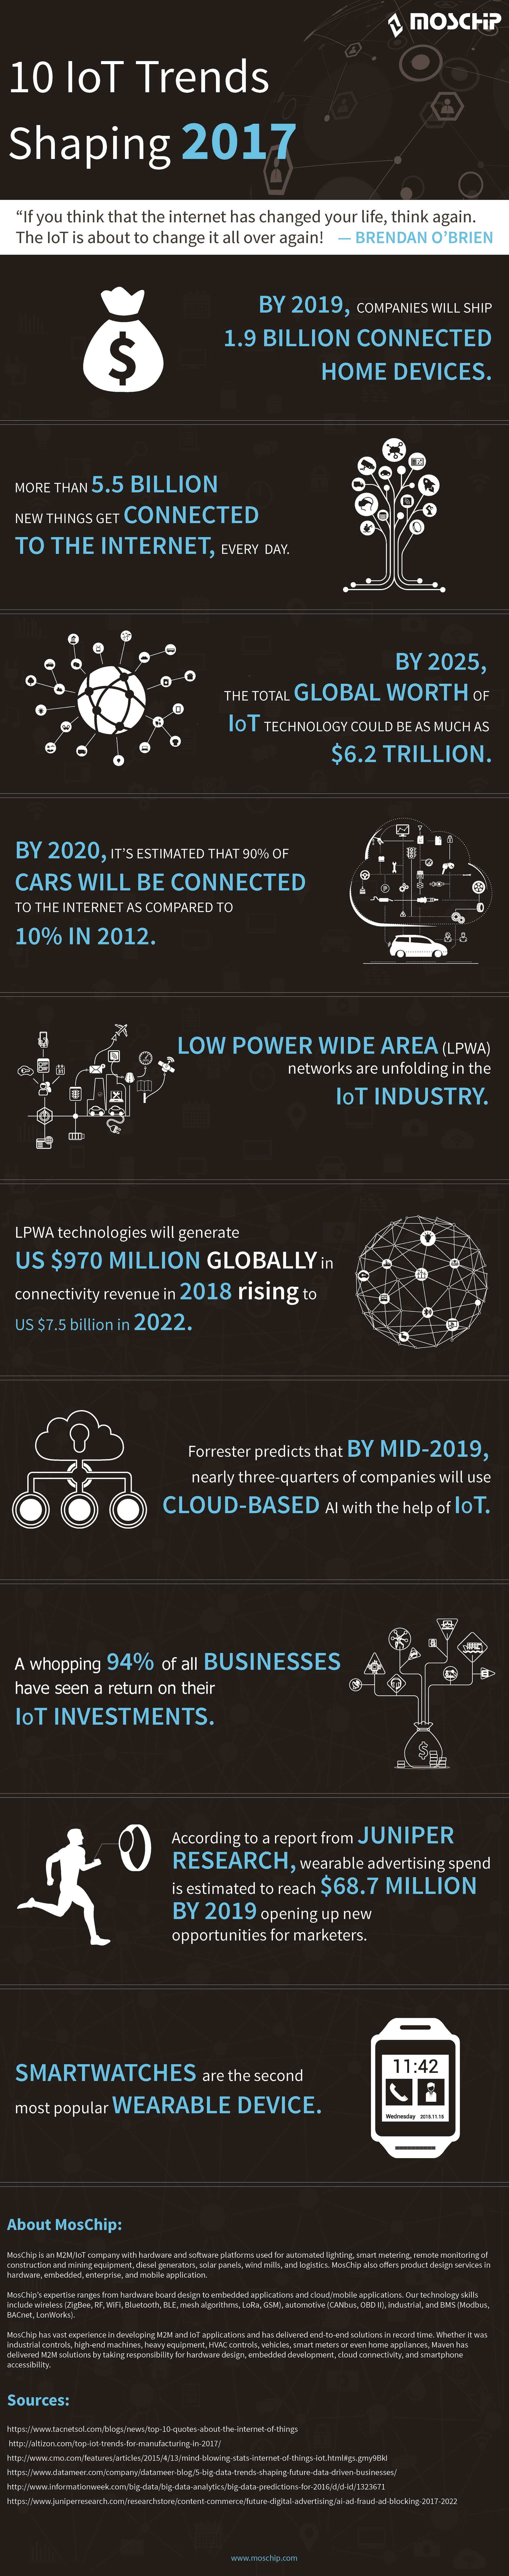 10 IoT Trends Shaping 2017